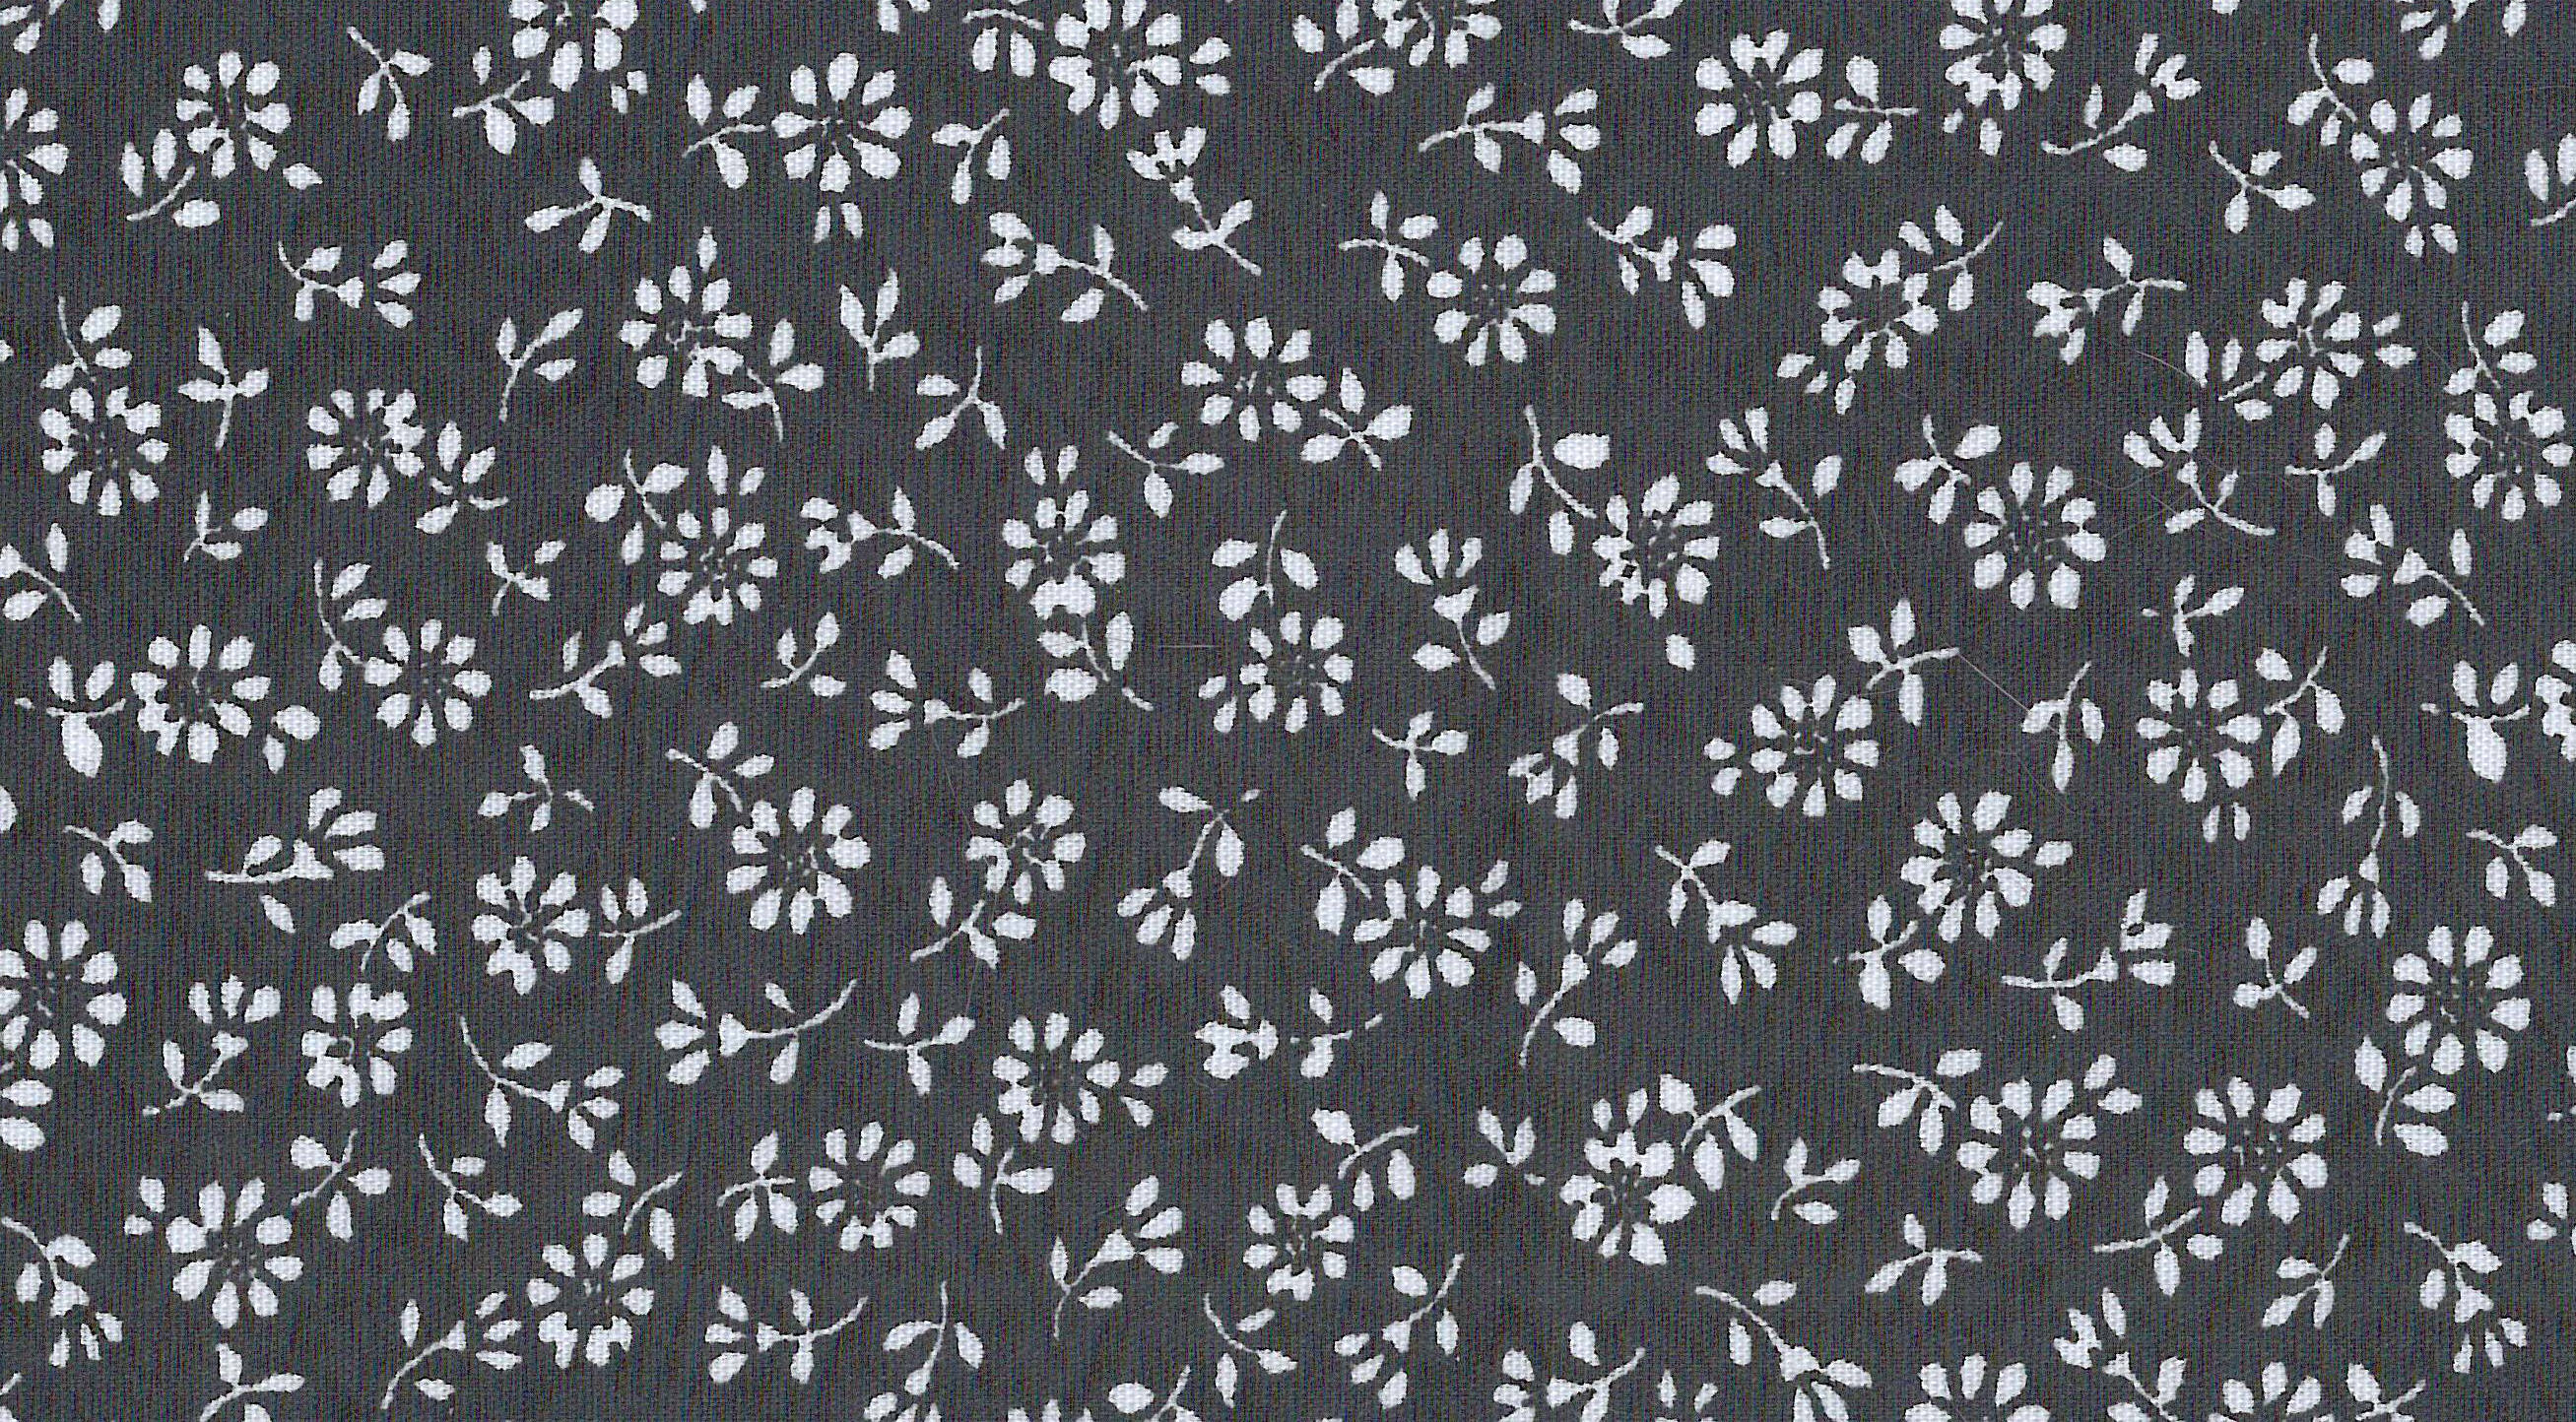 Cooling Tie - 491 Mini Black Flower